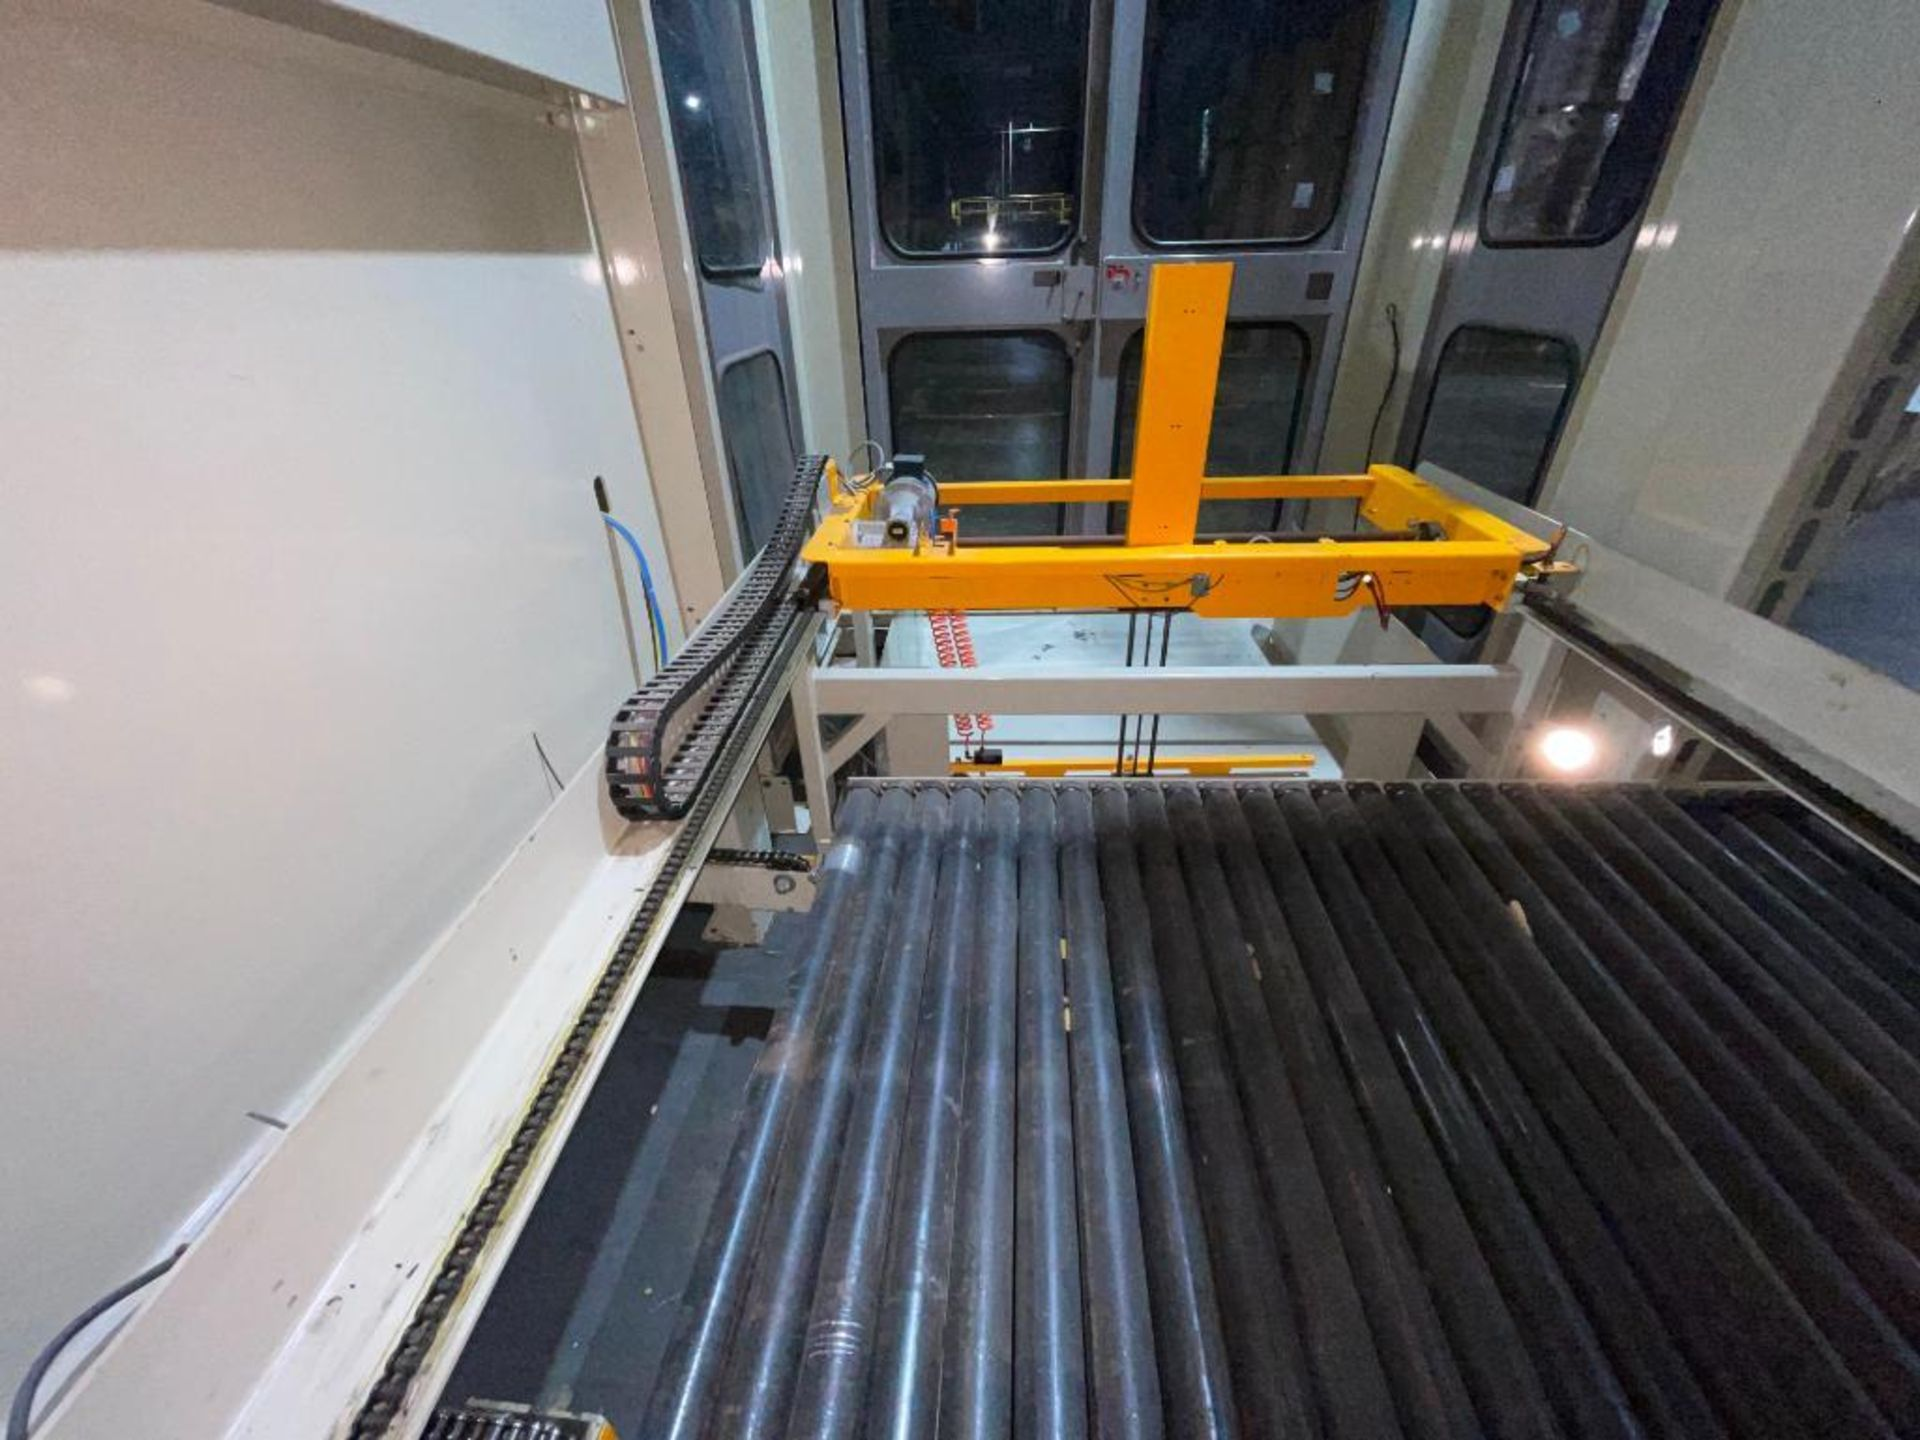 2013 TopTier downstacker, model DS with integrated TopTier pallet wrapper - Image 41 of 66